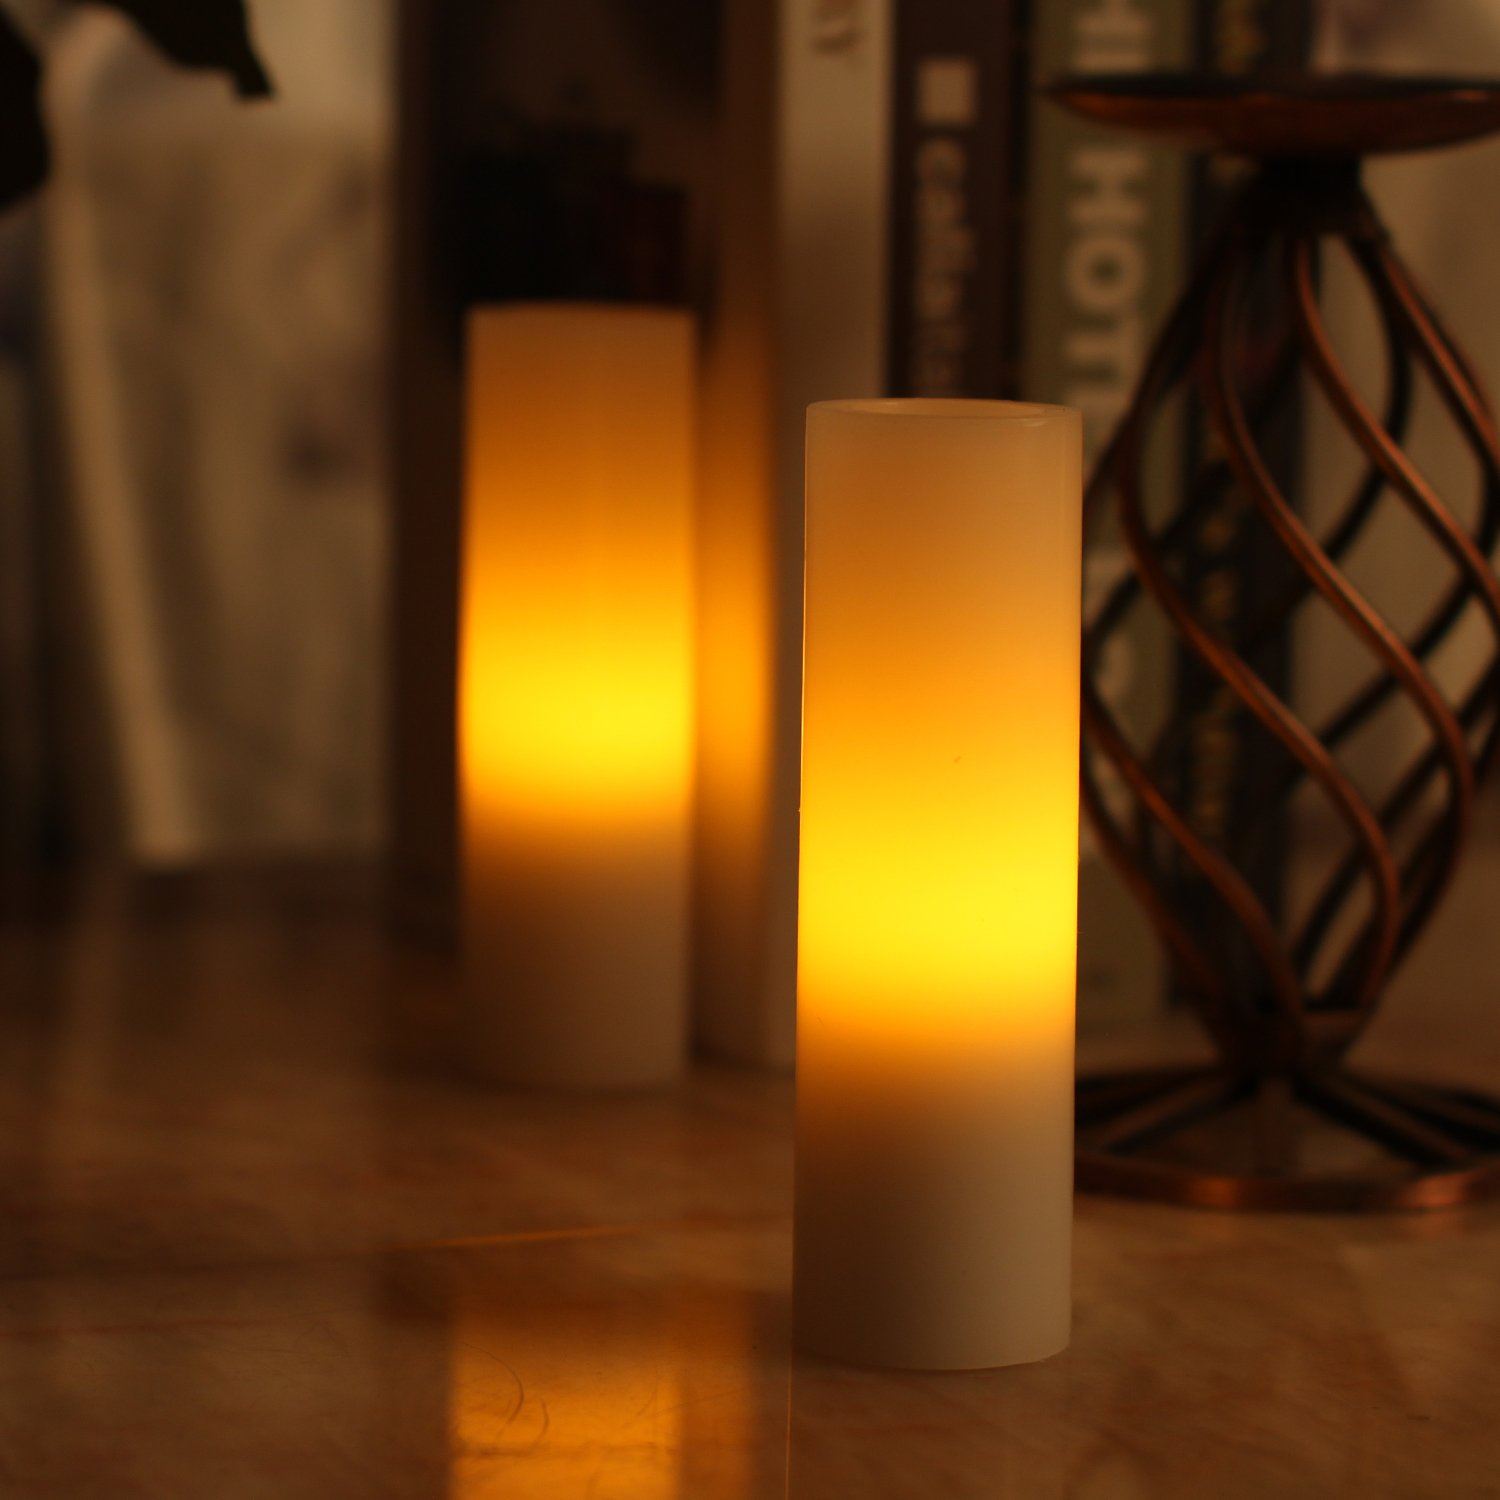 DFL 1-3//4x6 Inch Smooth Flameless Real Wax Votive Led Candle,Battery-Operated,White,pack of 2